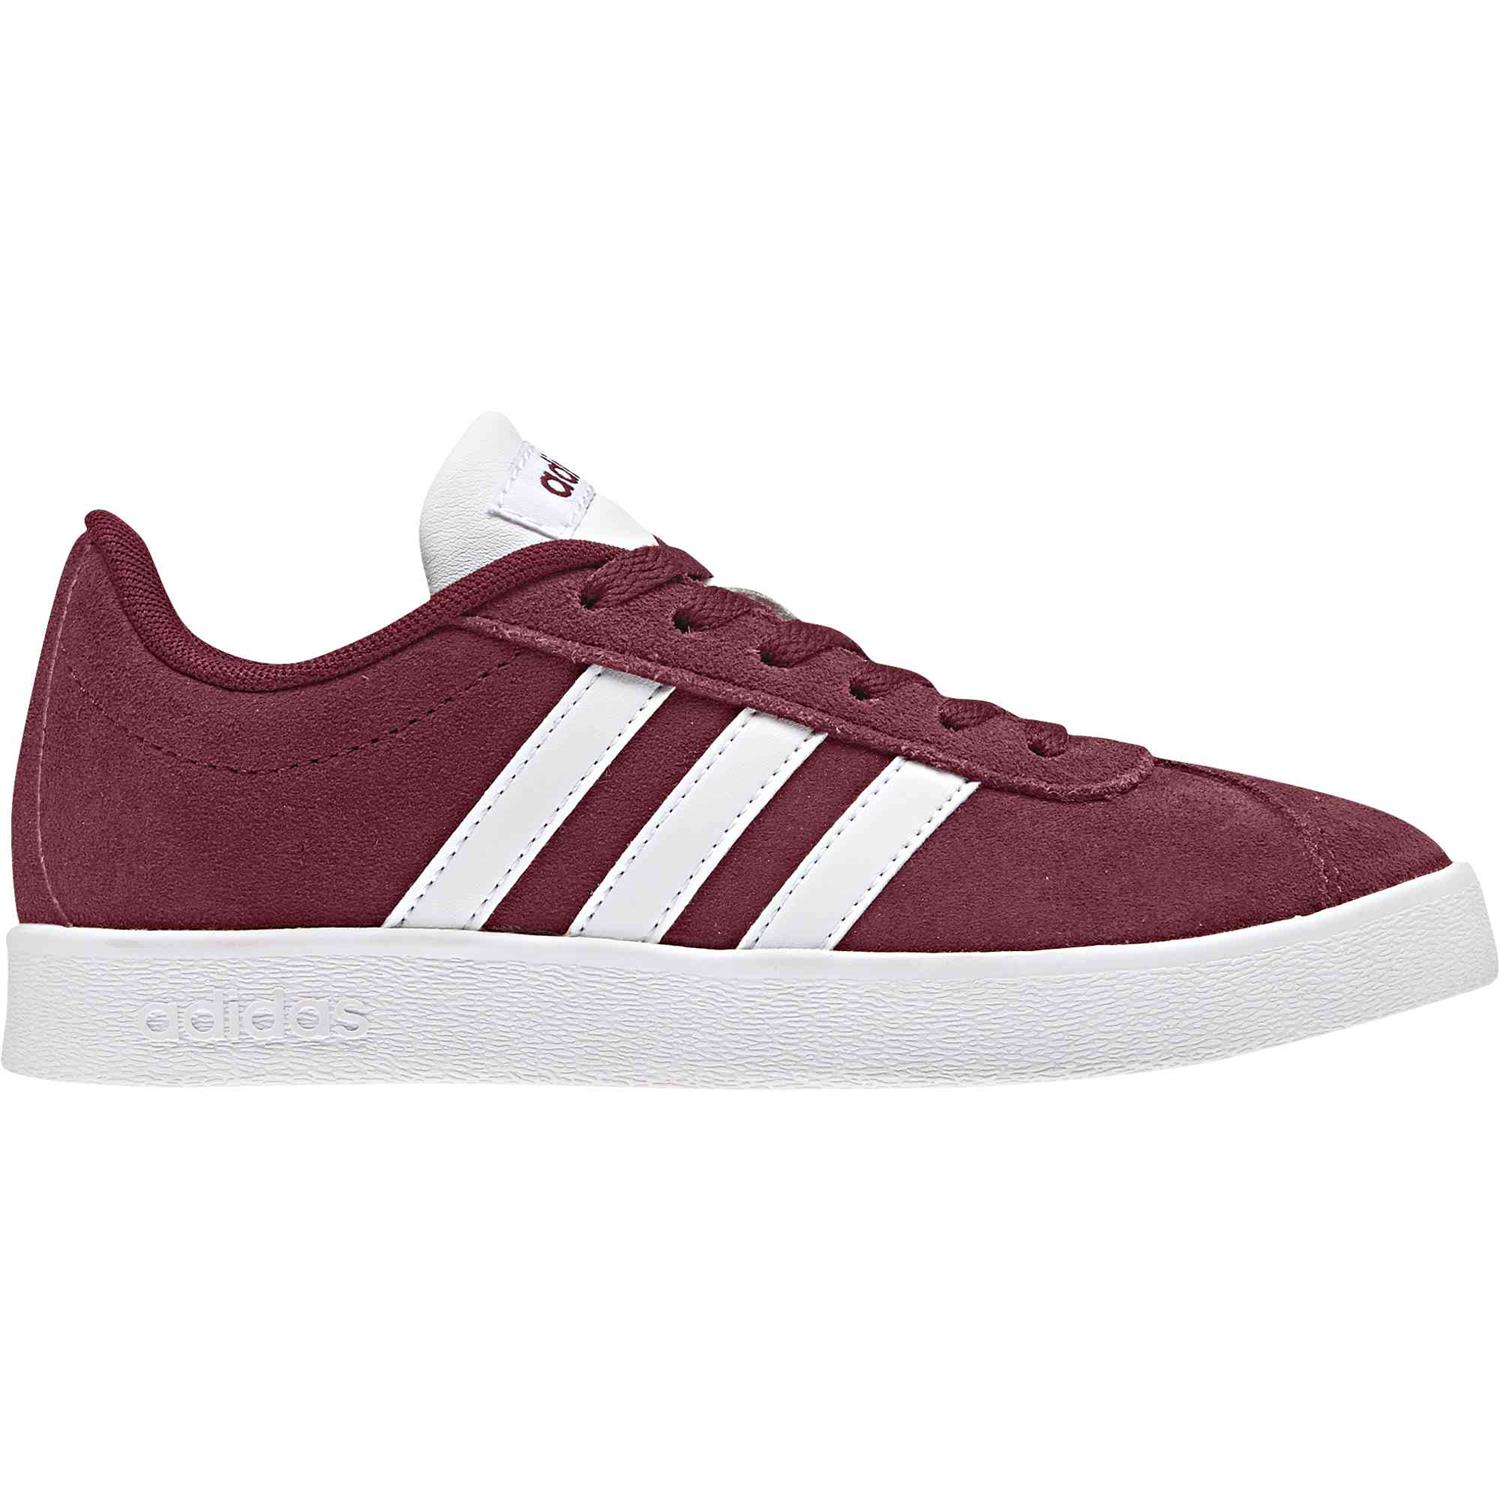 56f1d9821b6 ADIDAS VL Court junior schoenen bordeau